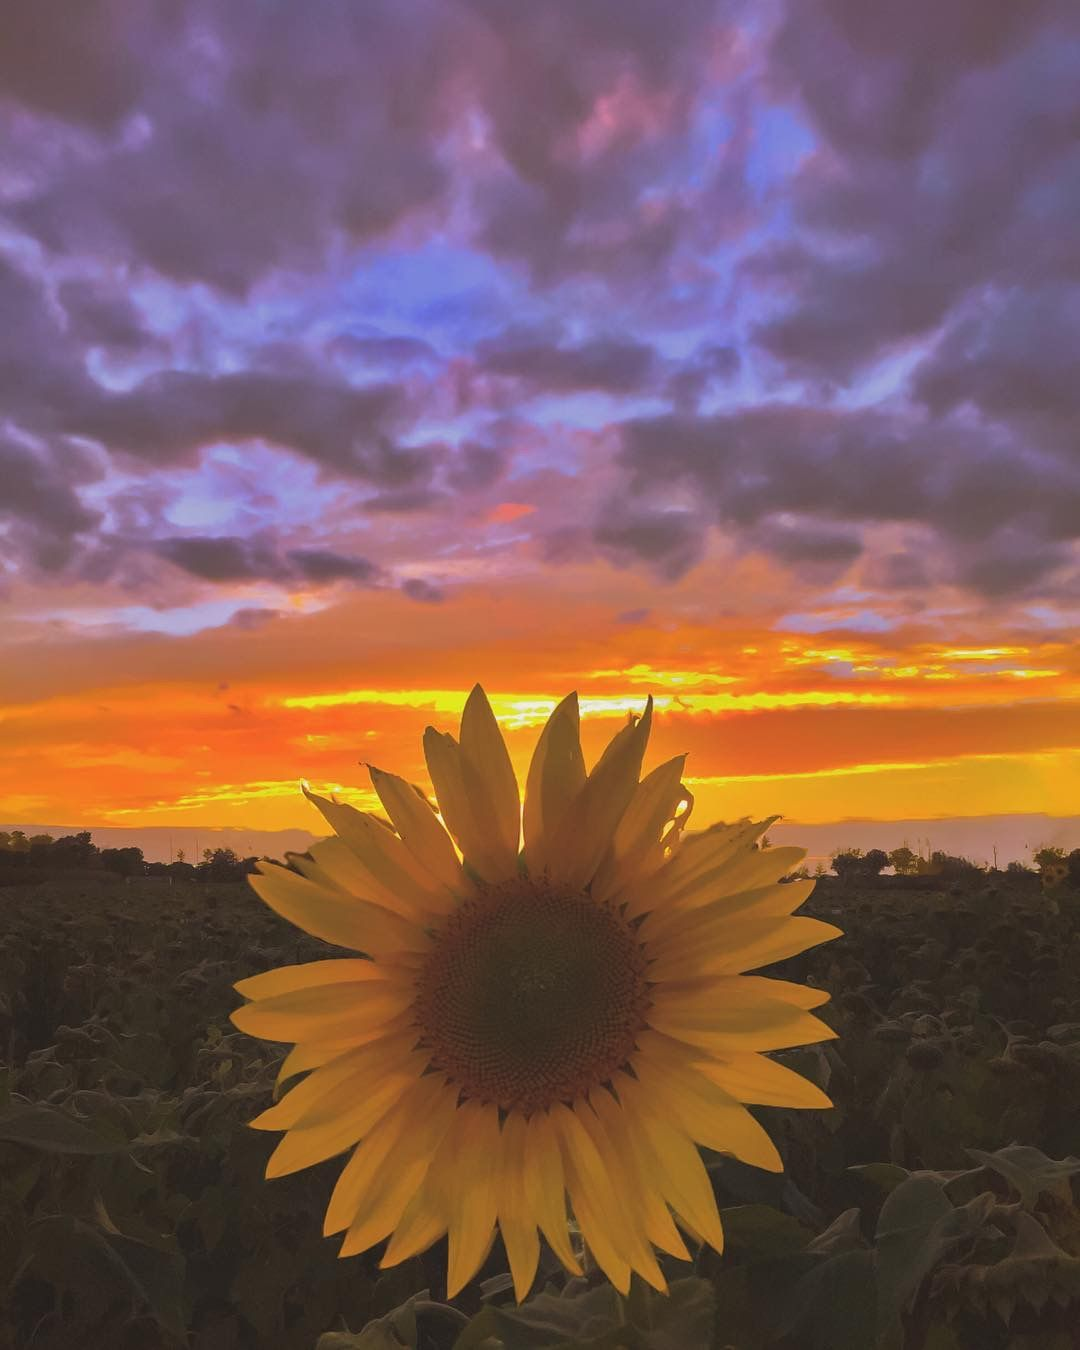 Pin by Michele Tabasso on Sunflowers | Sunflower wallpaper ...